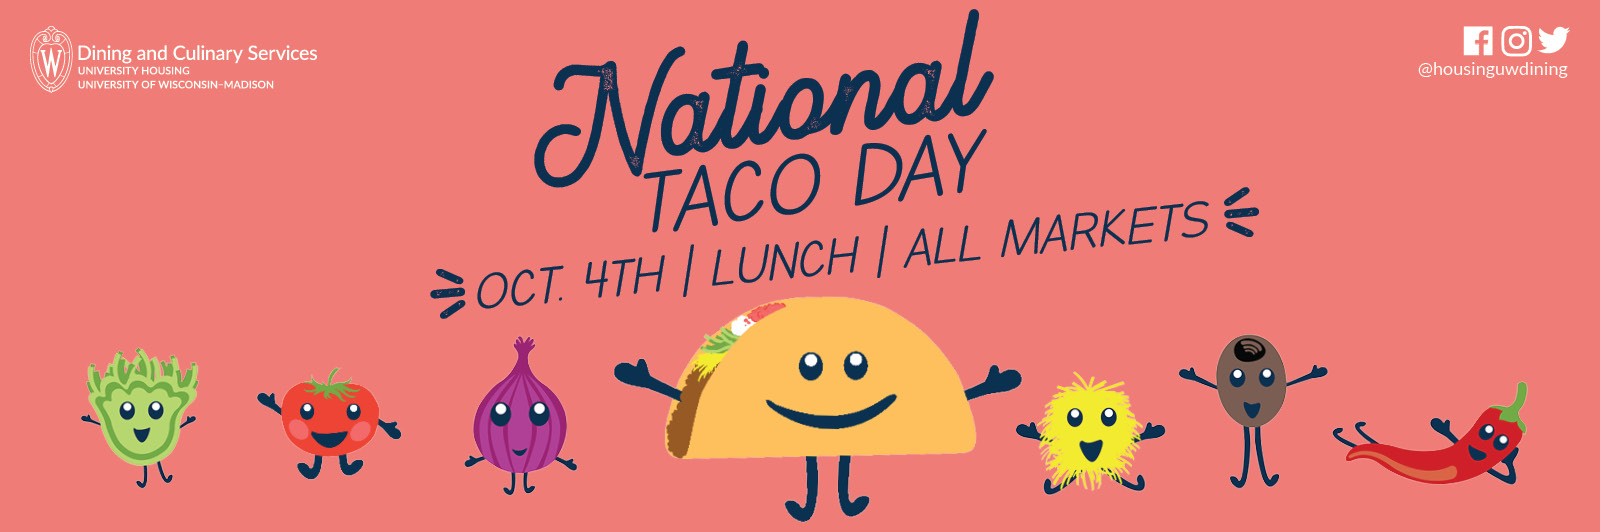 National Taco Day, Oct. 4th at Lunch at all Dining Locations